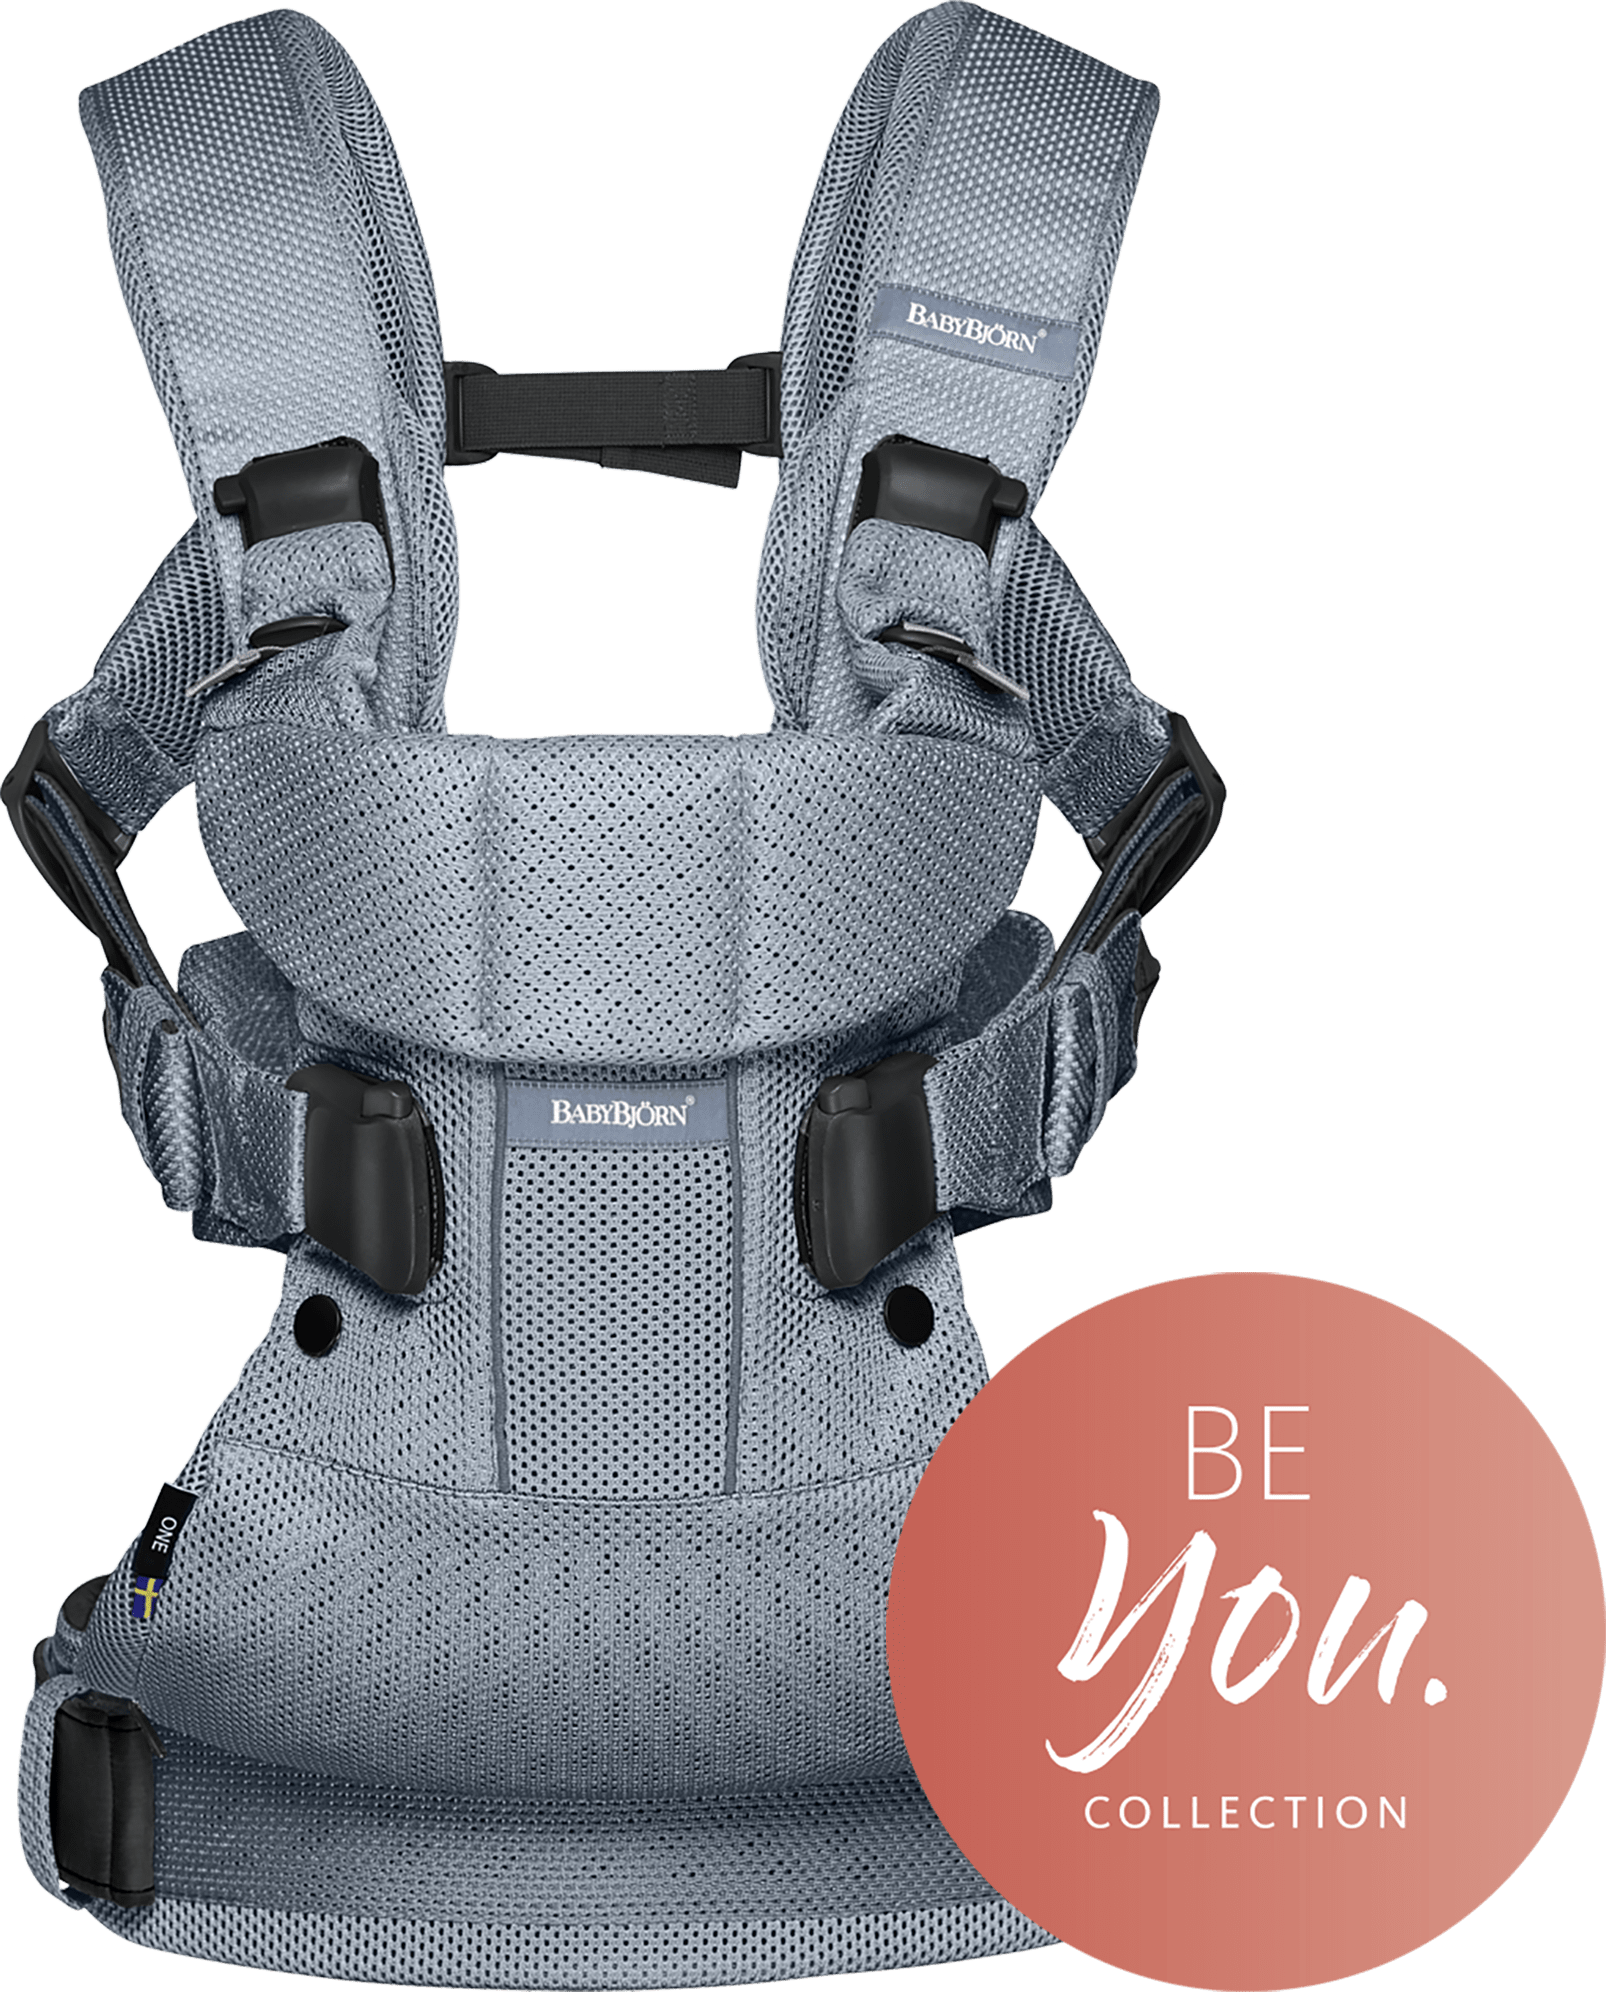 BABYBJÖRN Baby Carrier One Air in dusk blue mesh, an ergonomic baby carrier perfect for newborn up to 3 years.